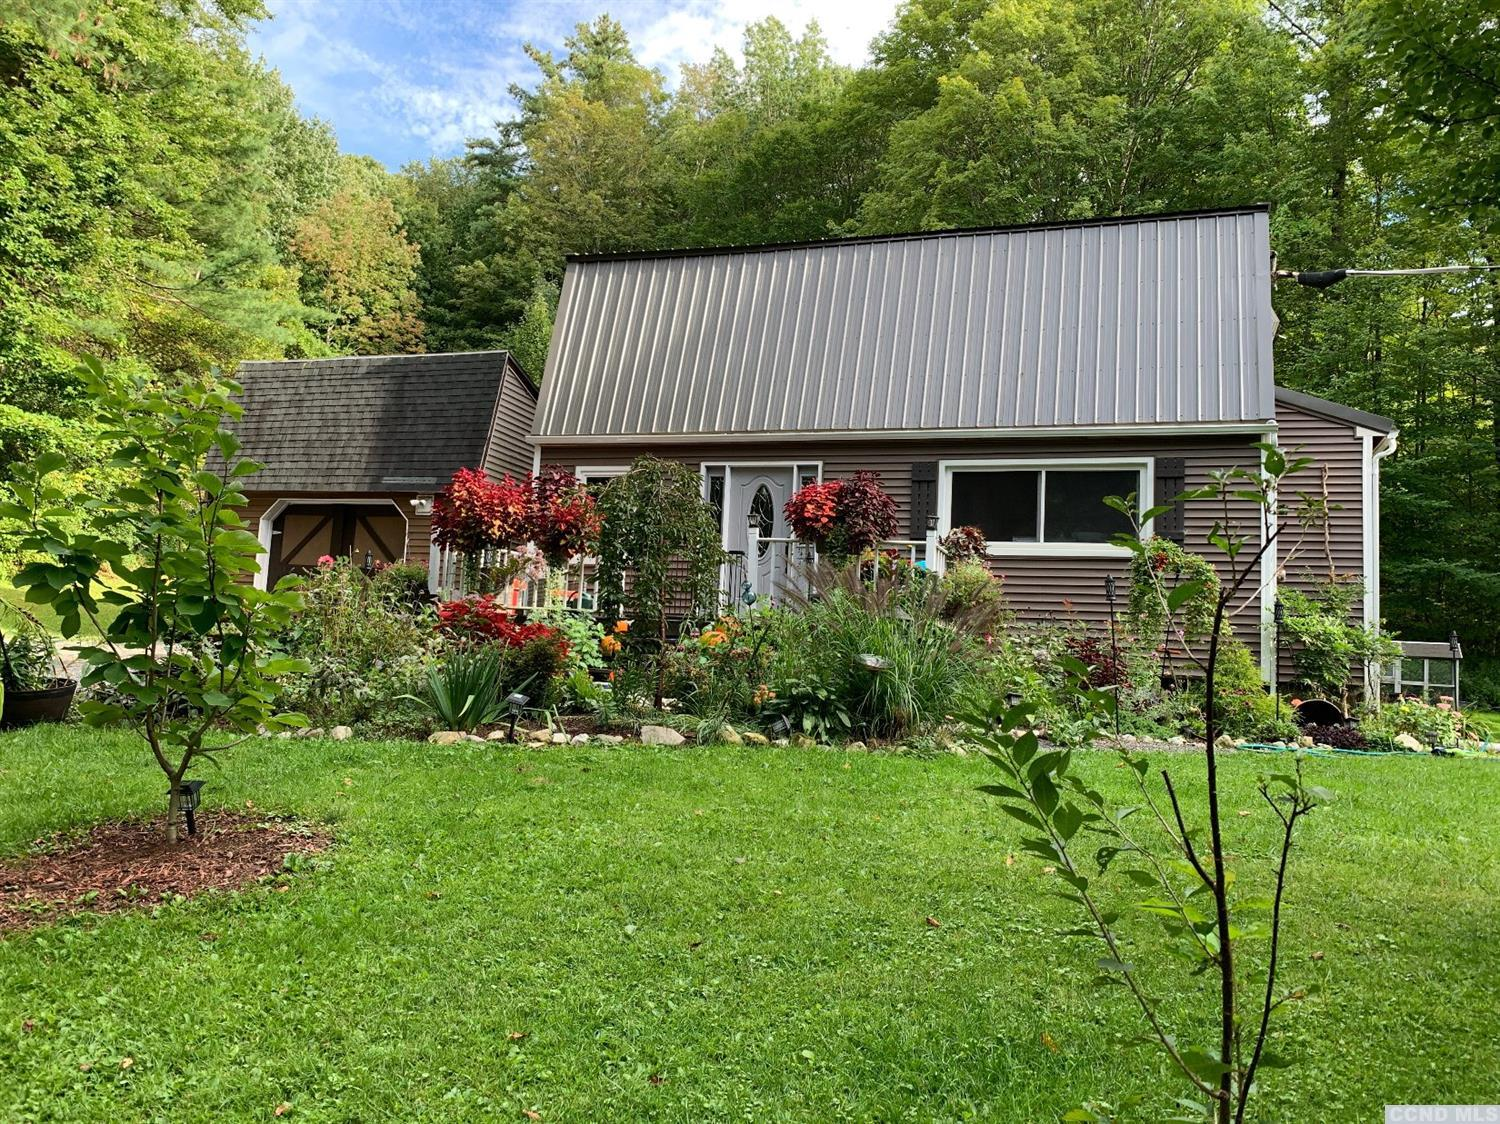 Private and secluded is this sweet, light filled Cottage style home on 5 acres.  Lots of renovations including new windows (warranty assumable), metal roof, new country kitchen, floors.  Open floor plan.  Two bedrooms and 1.5 baths with an office/ potential 3rd bedroom loft up a spiral staircase. Pellet stove to warm up the living area. Full unfinished basement with new water heater and poured floor. Beautifully landscaped with perennial gardens.  Front deck to soak up the pristine surroundings. Recent driveway upgrade. Close to the Berkshires, and Albany.<br>You've got to see this one.  Motivated sellers. OPEN HOUSE, Sunday, 12/15/2019, 11:00am - 1:00pm!